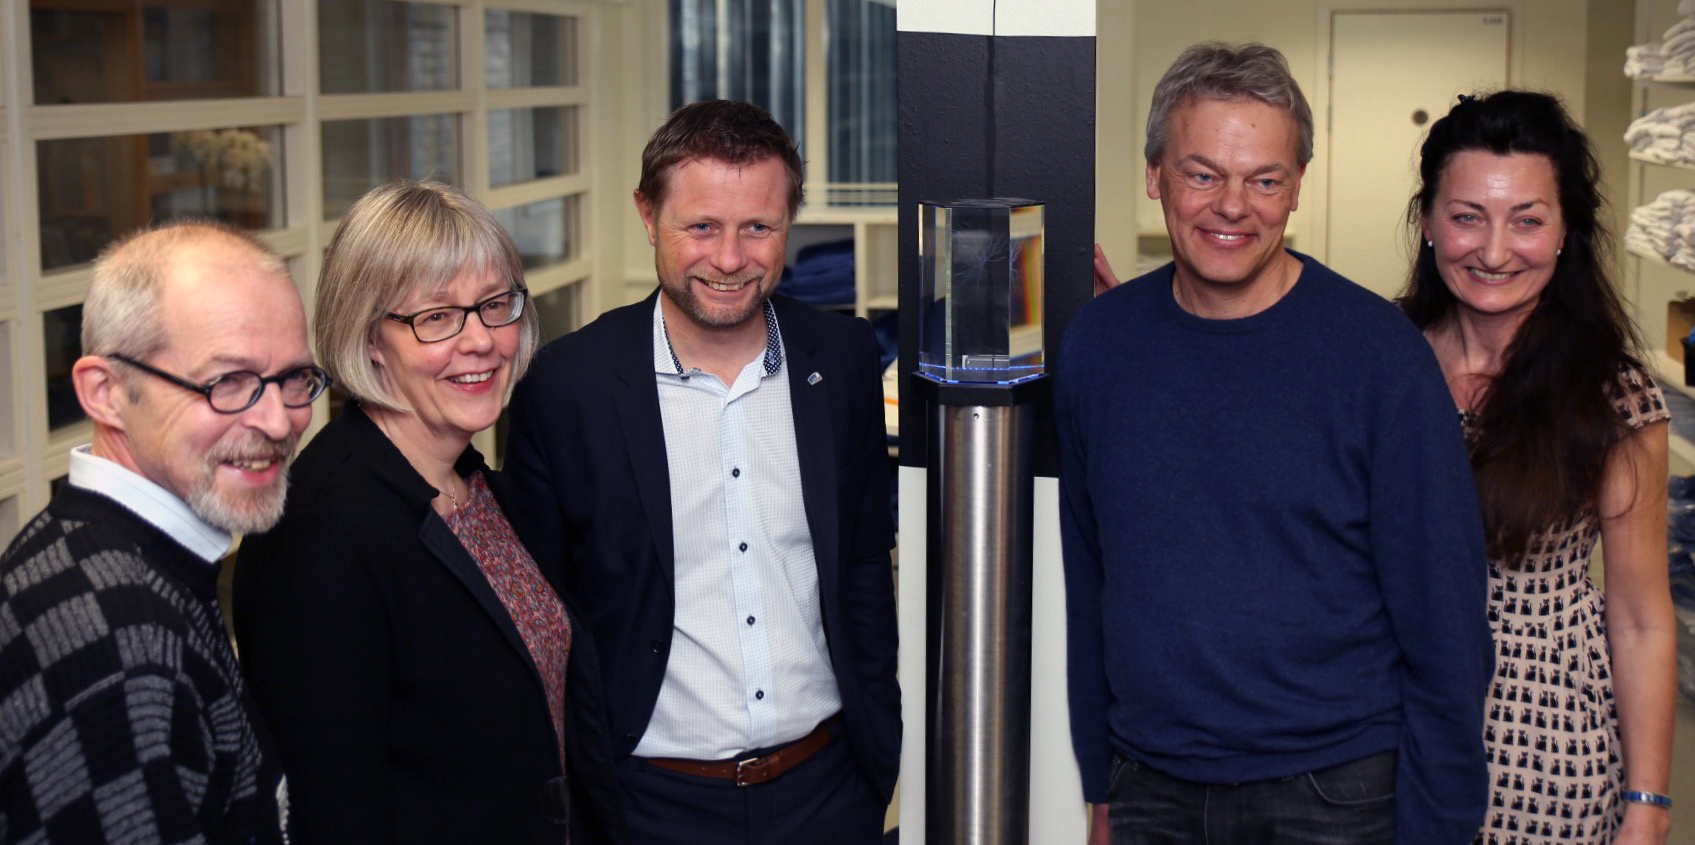 From left: Professor Menno Witter, State Secretary Anne Grethe Erlandsen, Minister of Health and Care Services Bent Høie, Professor Edvard Moser, and Professor May-Britt Moser. Photo credits: Frode Nikolaisen / St. Olavs Hospital